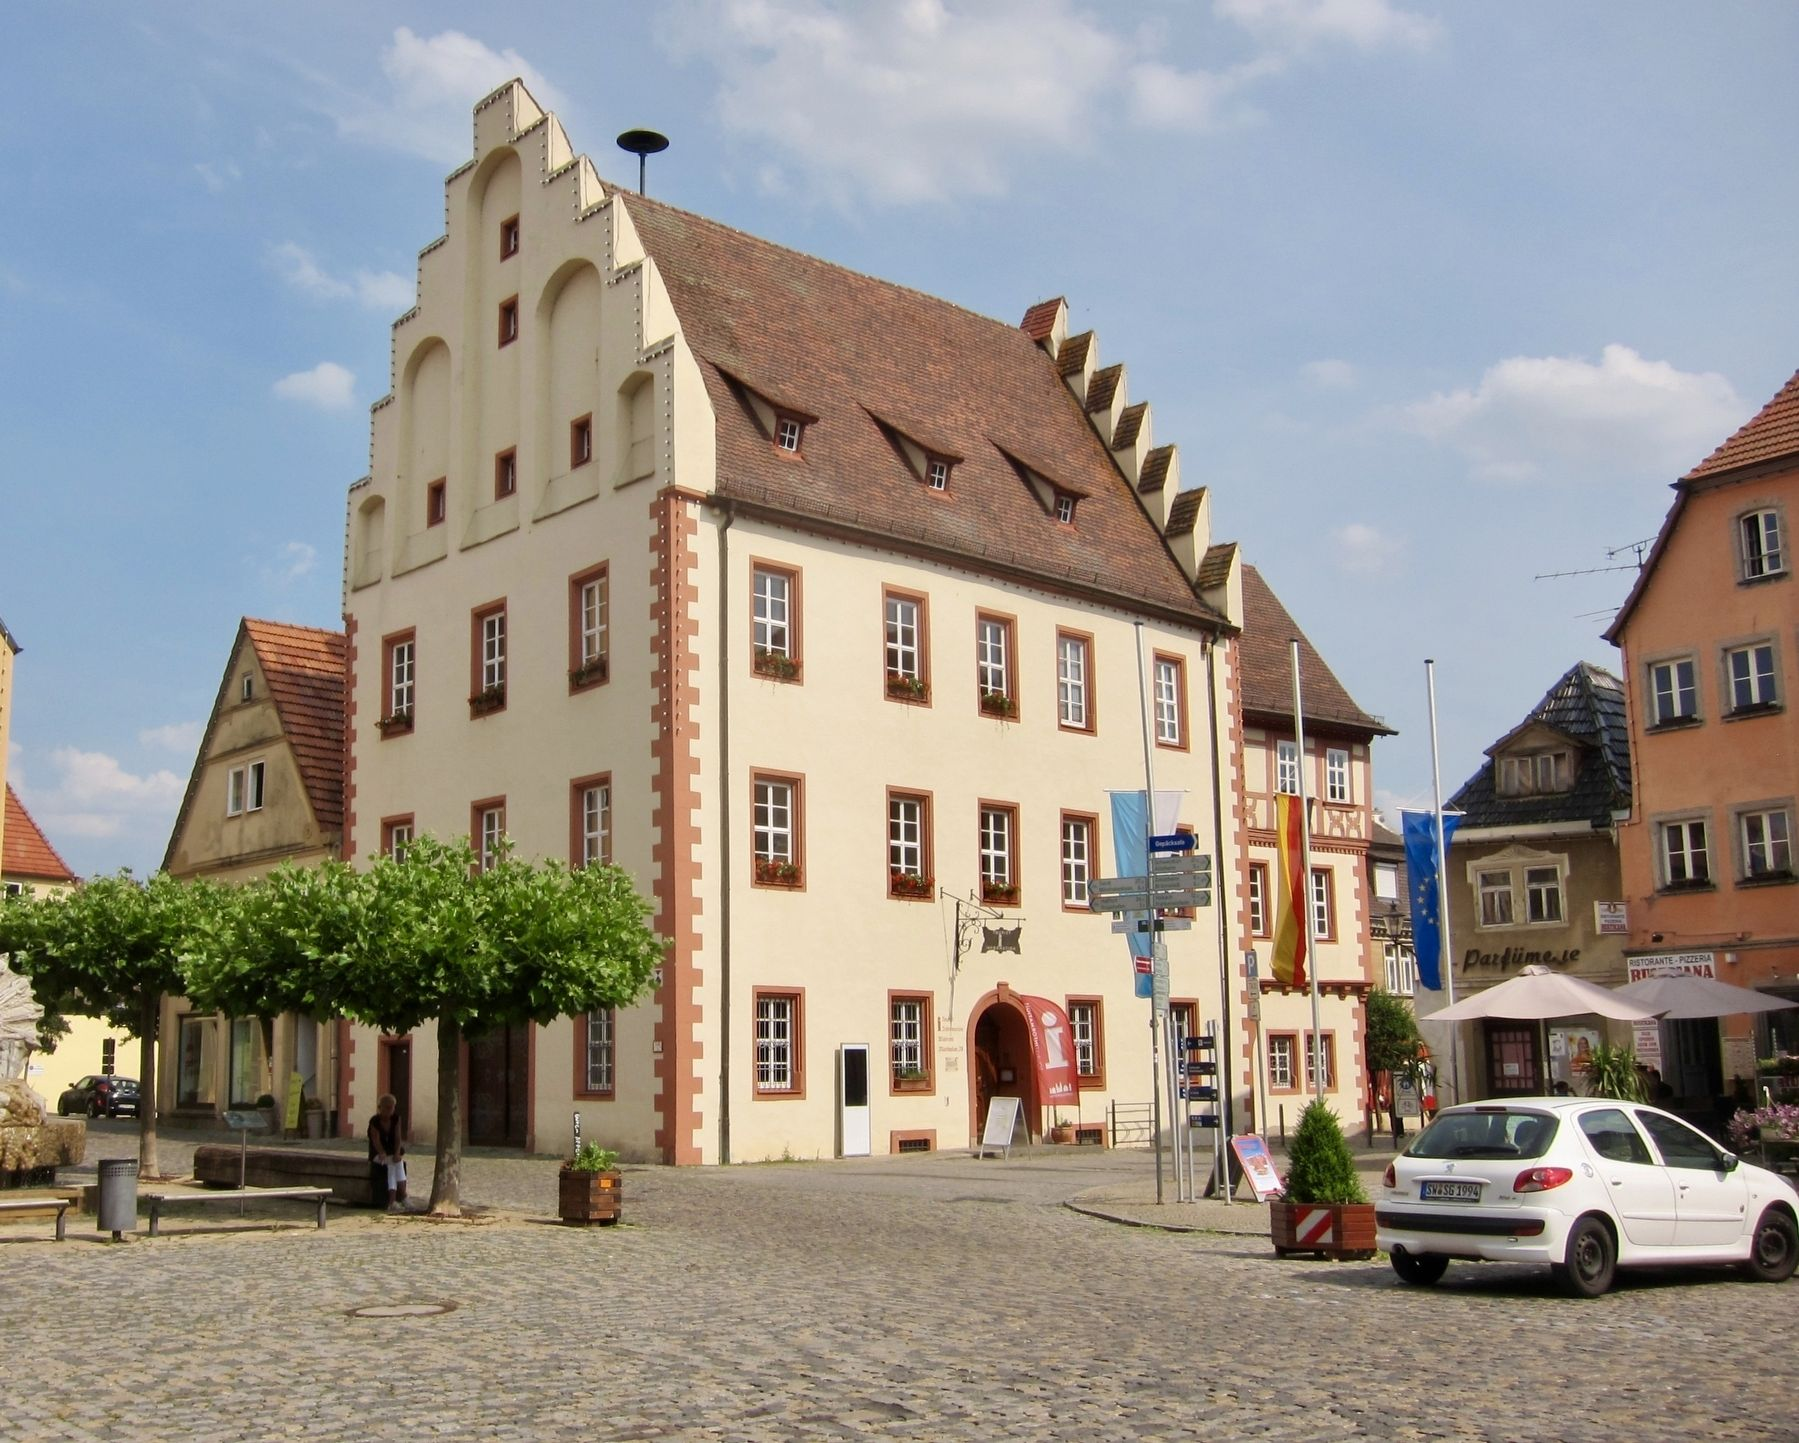 Altes Rathaus / The Old City Hall and Marker image. Click for full size.